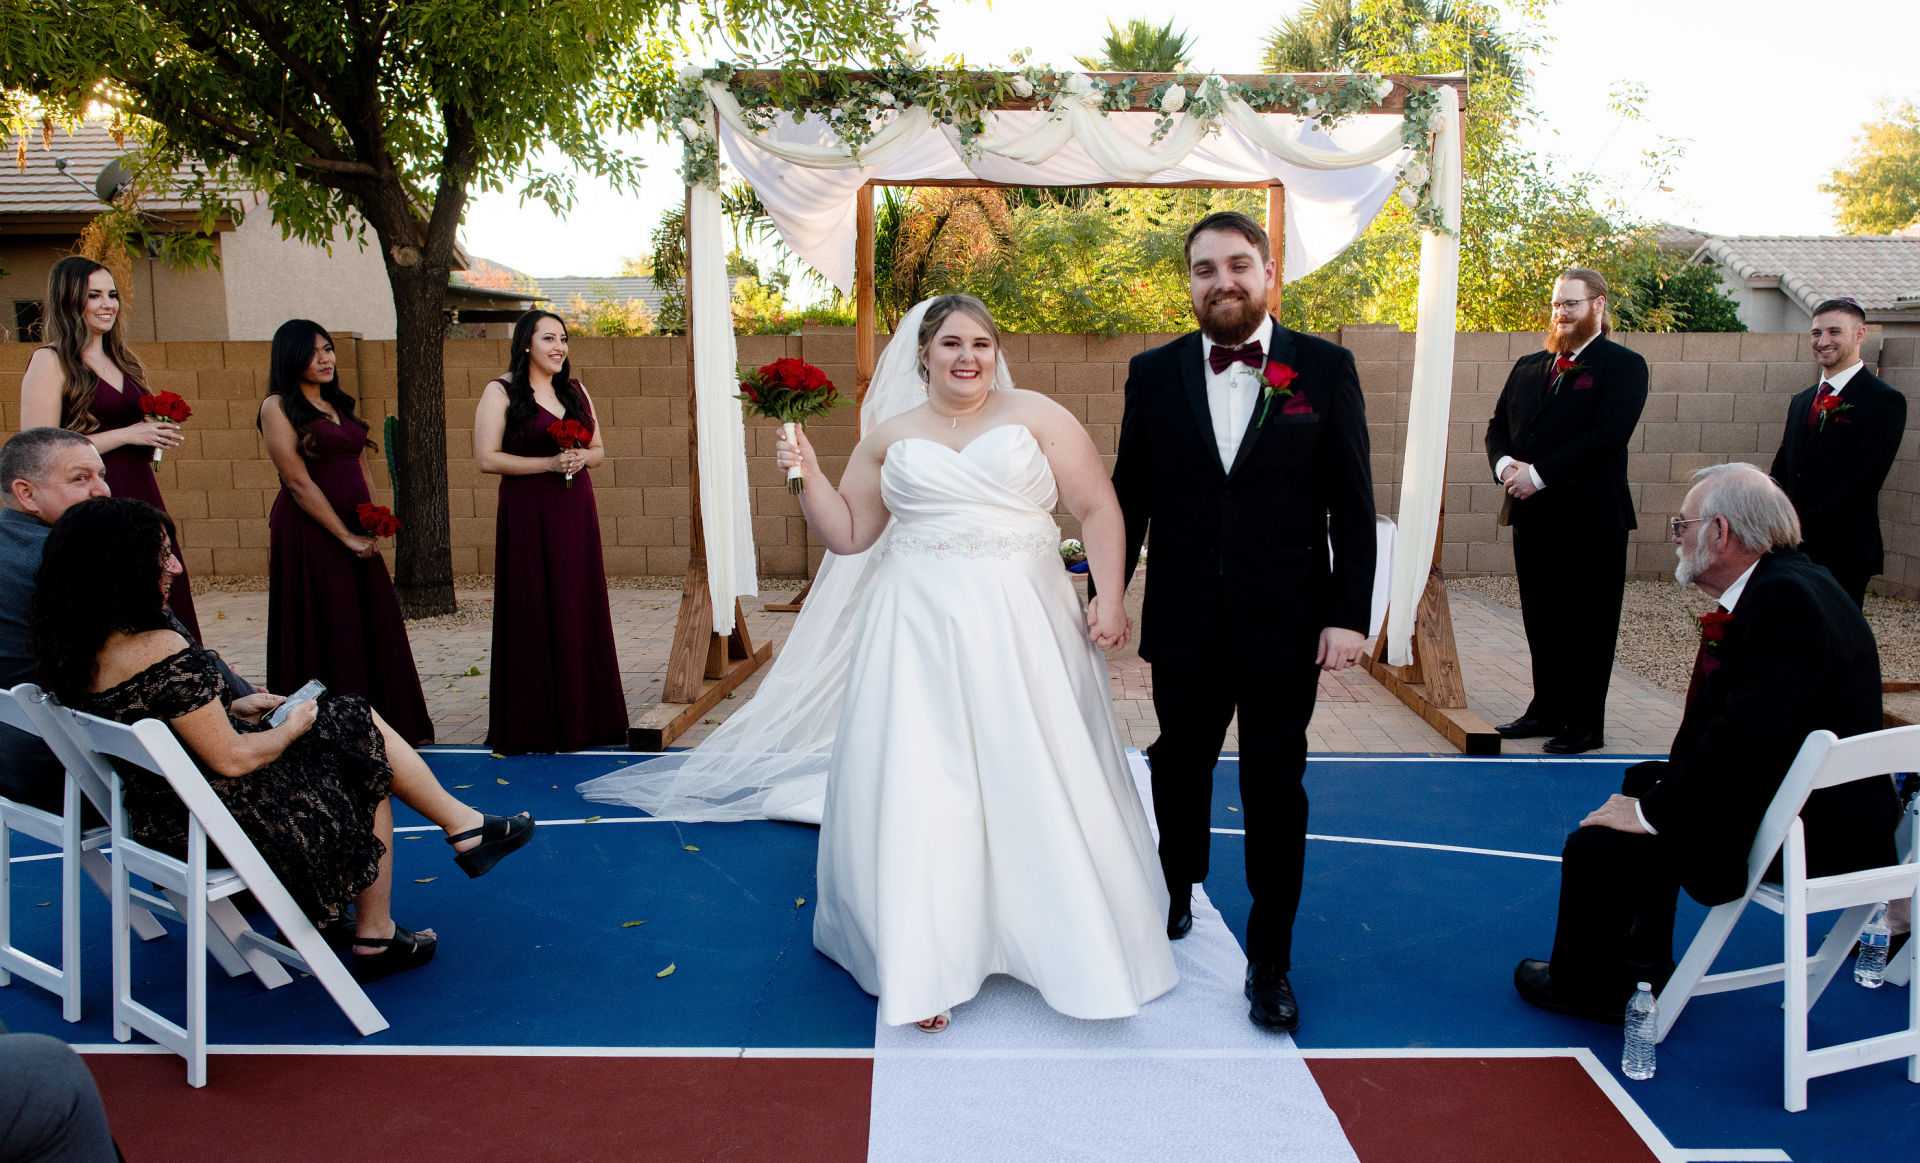 Casual Backyard Wedding Photo in Phoenix, AZ | At the end of their ceremony, the bride and groom hold hands